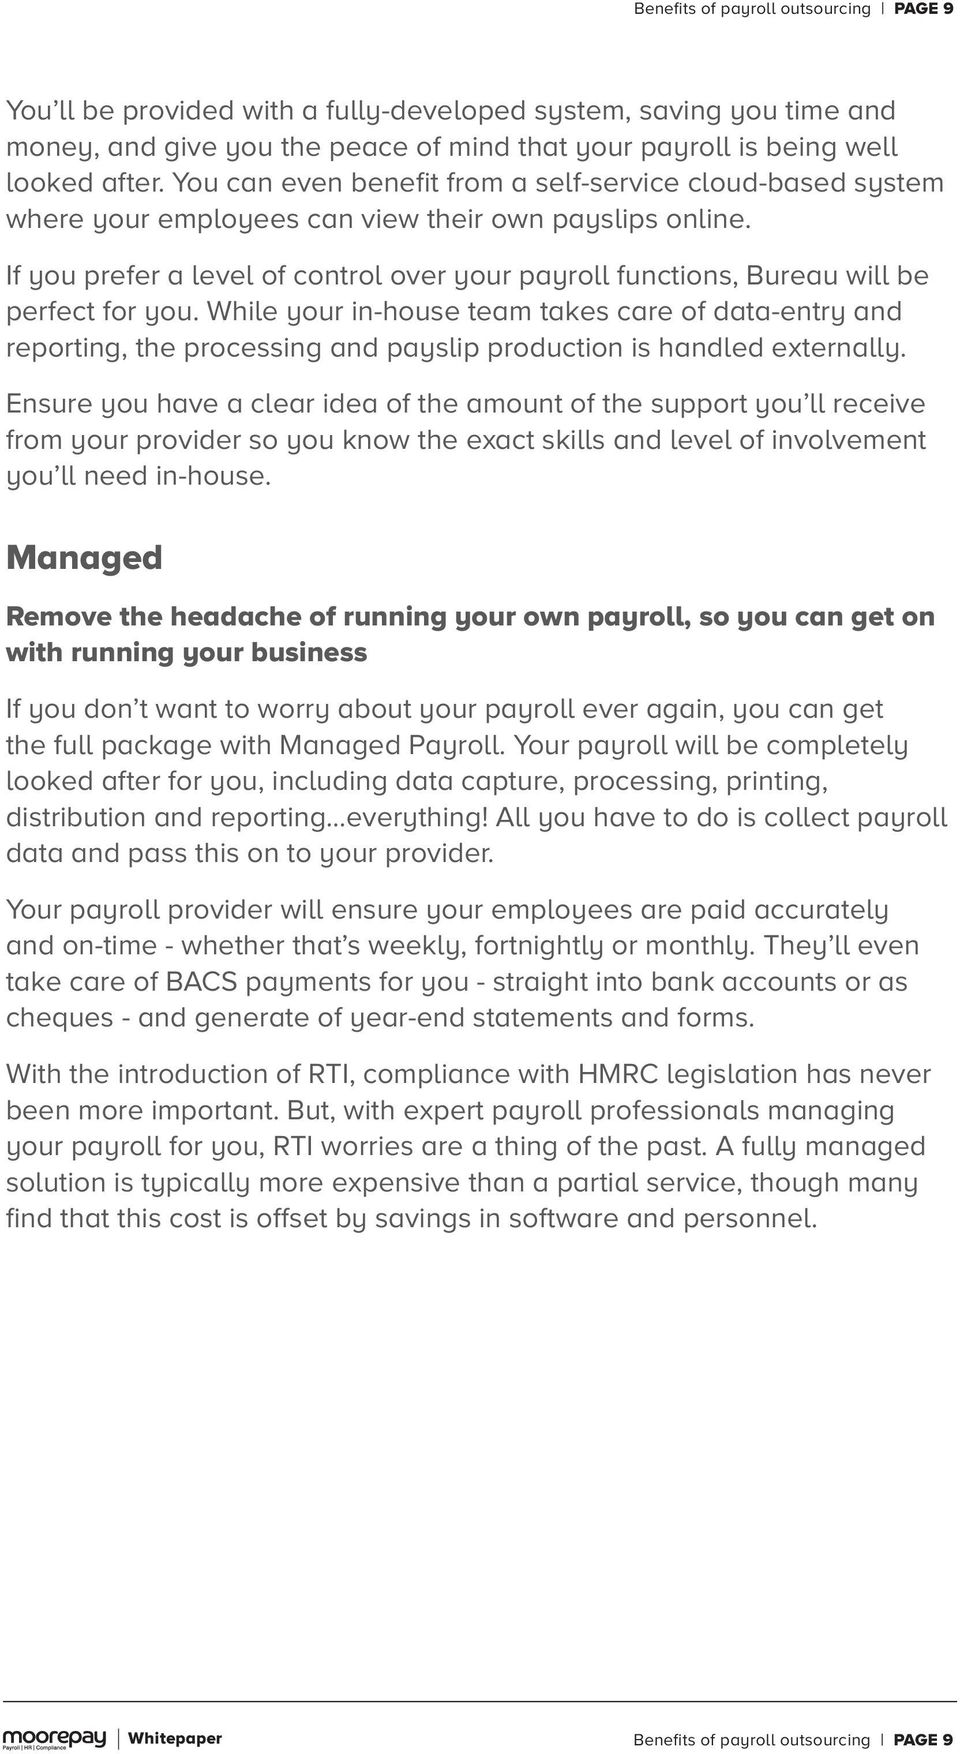 If you prefer a level of control over your payroll functions, Bureau will be perfect for you.